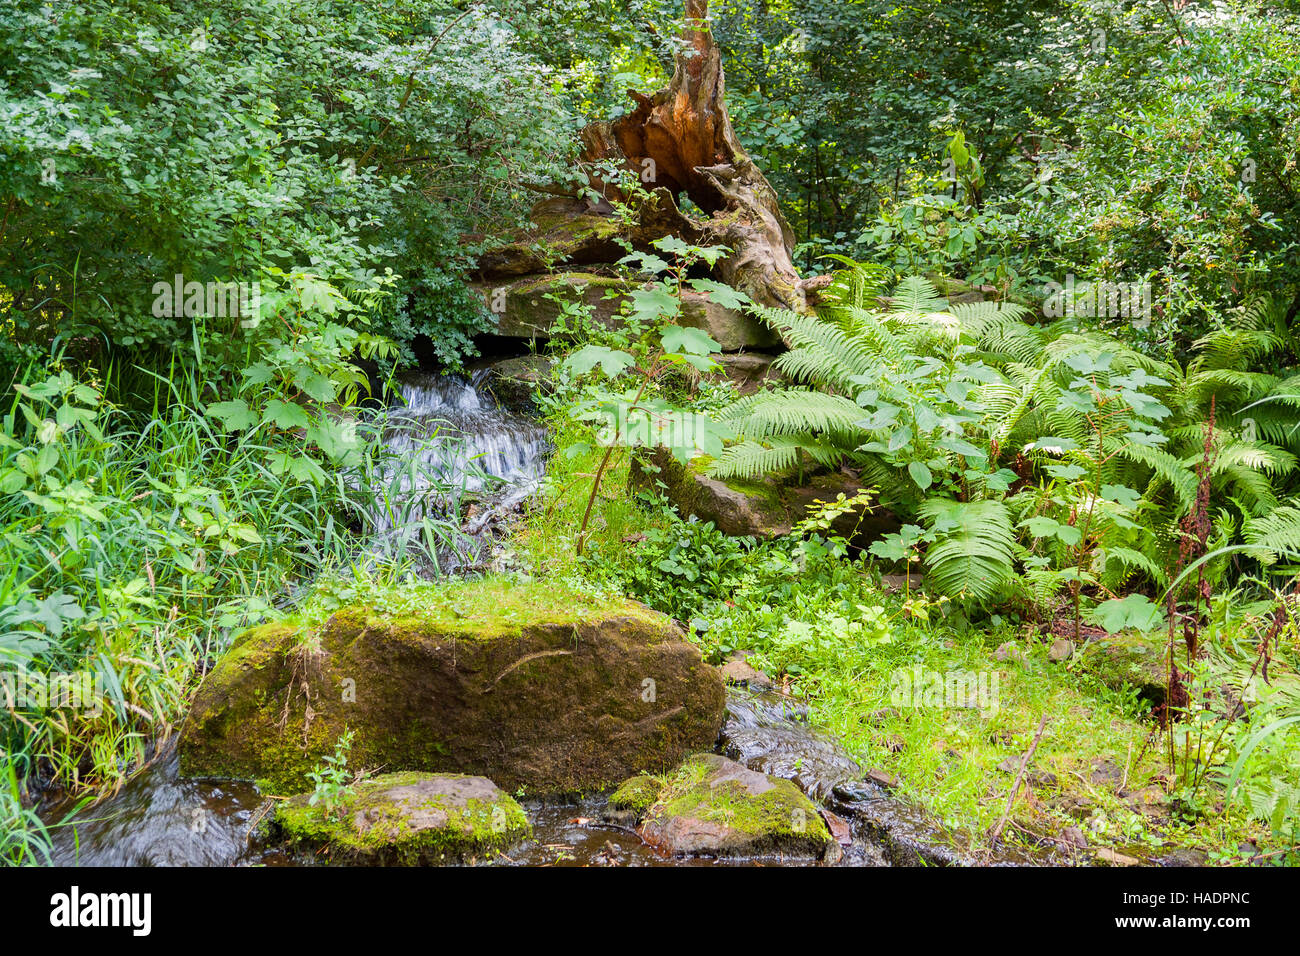 idyllic forest scenery including a fountain in green vegetation - Stock Image